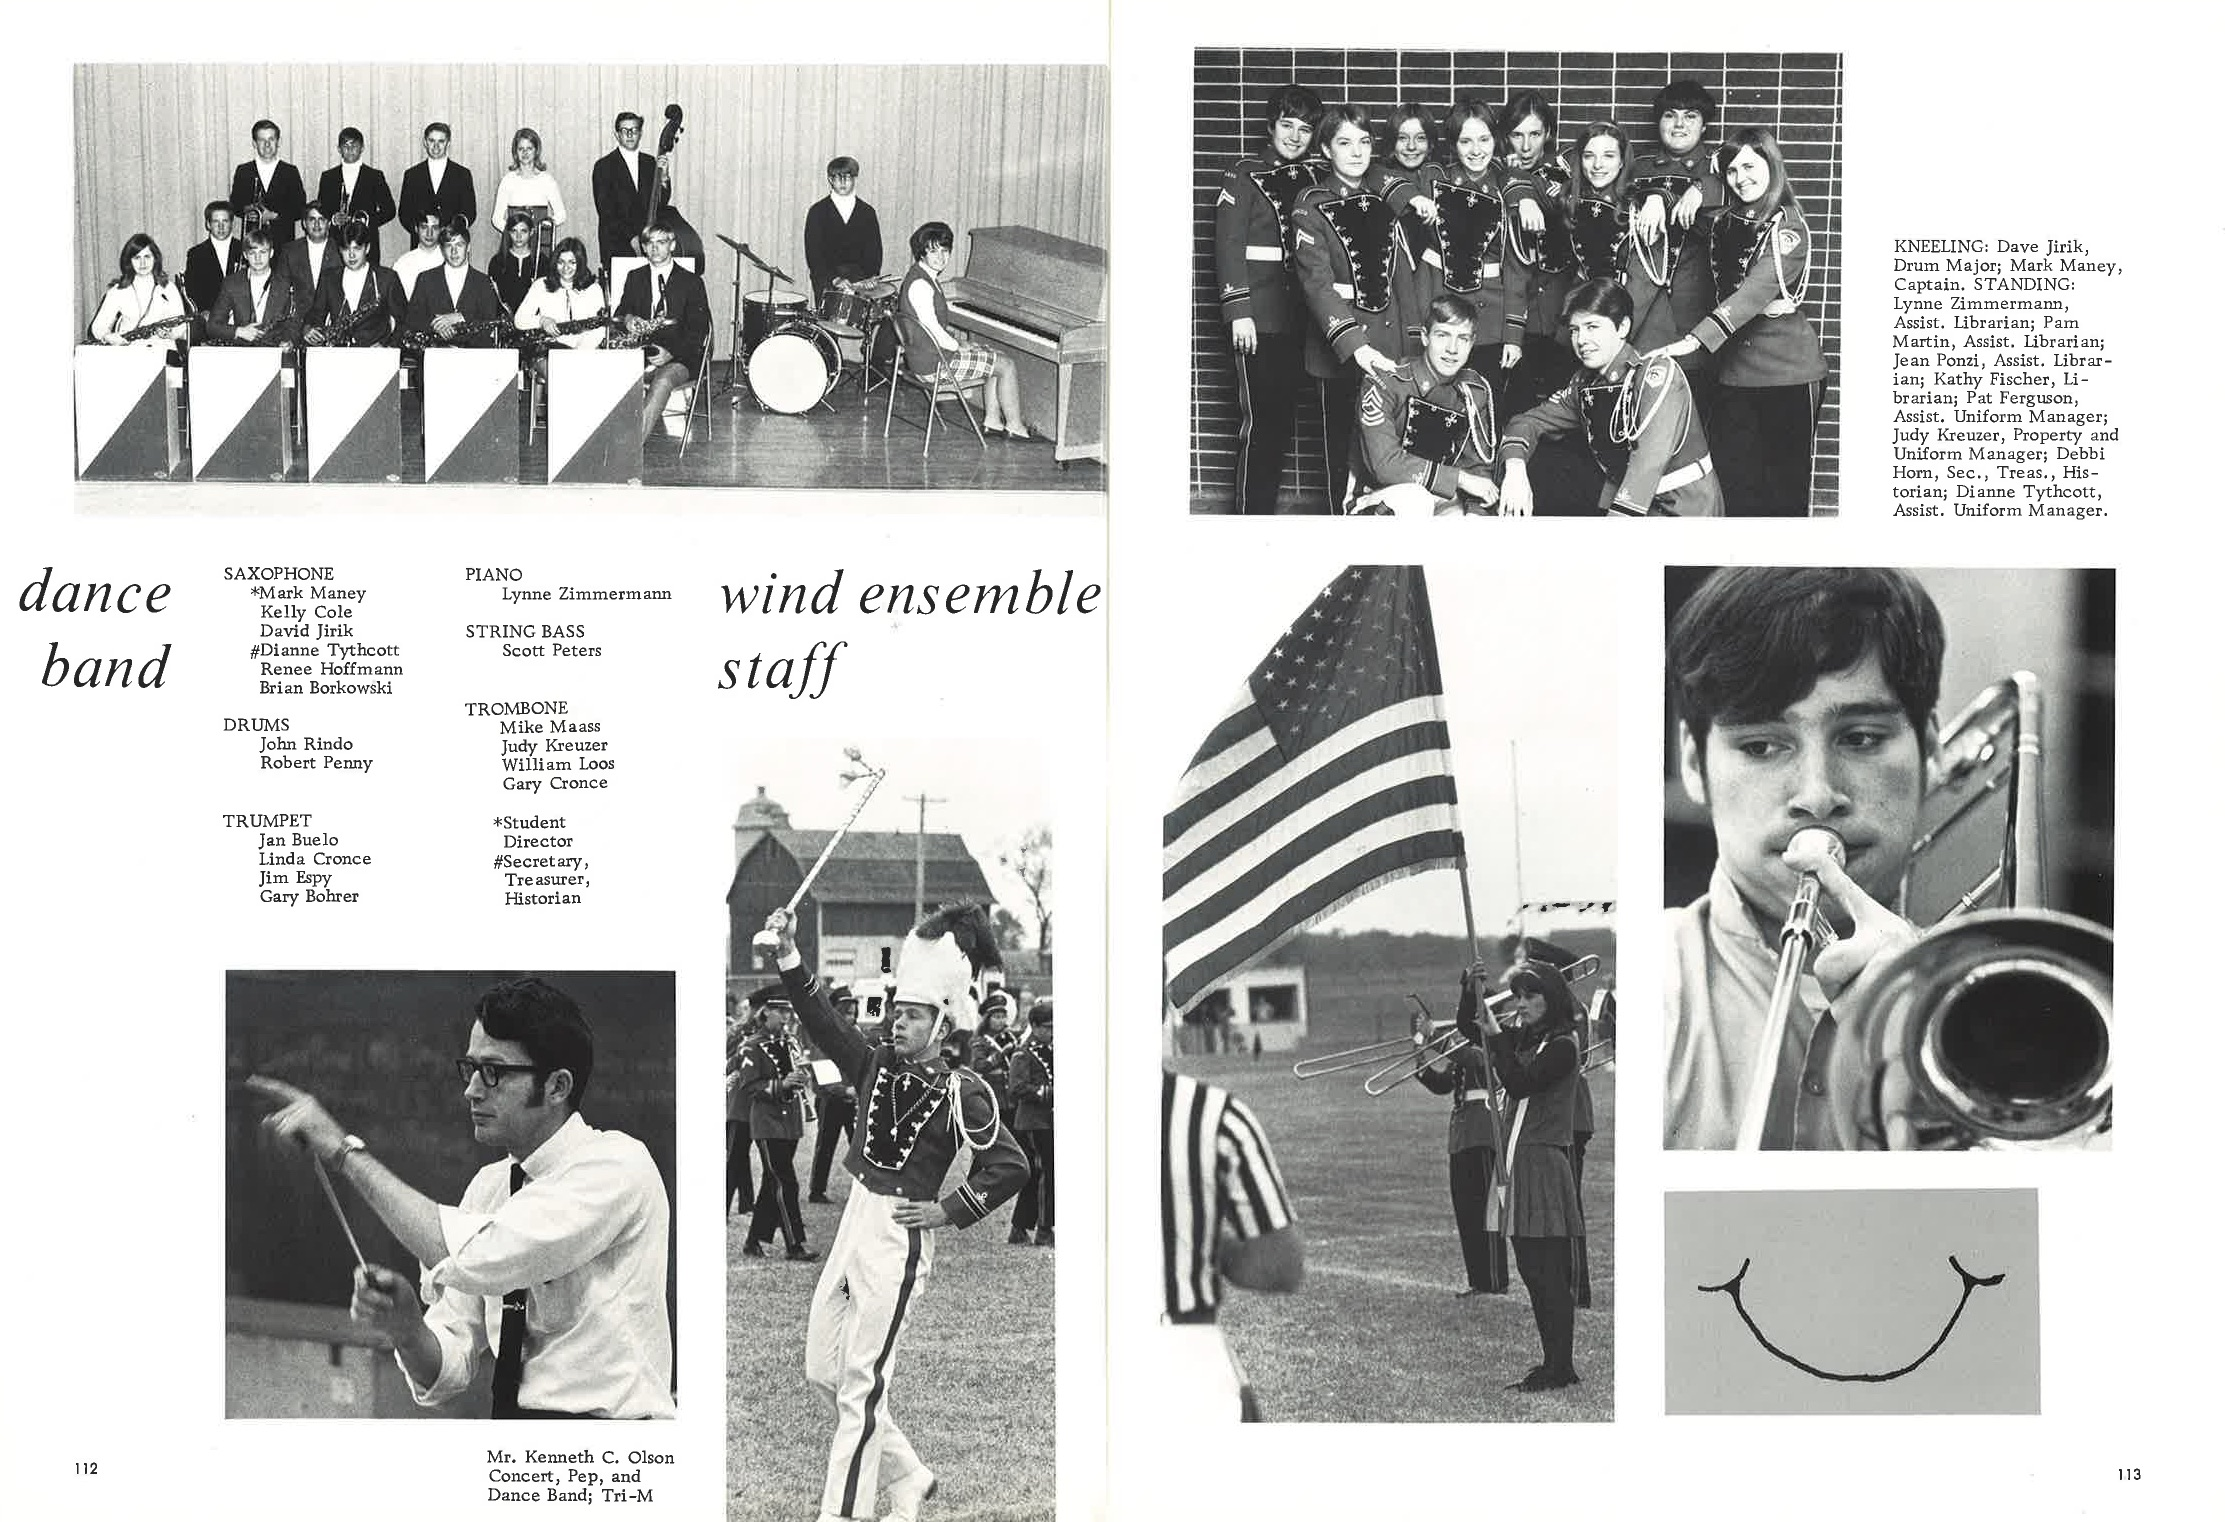 1970_Yearbook_112-113.jpg